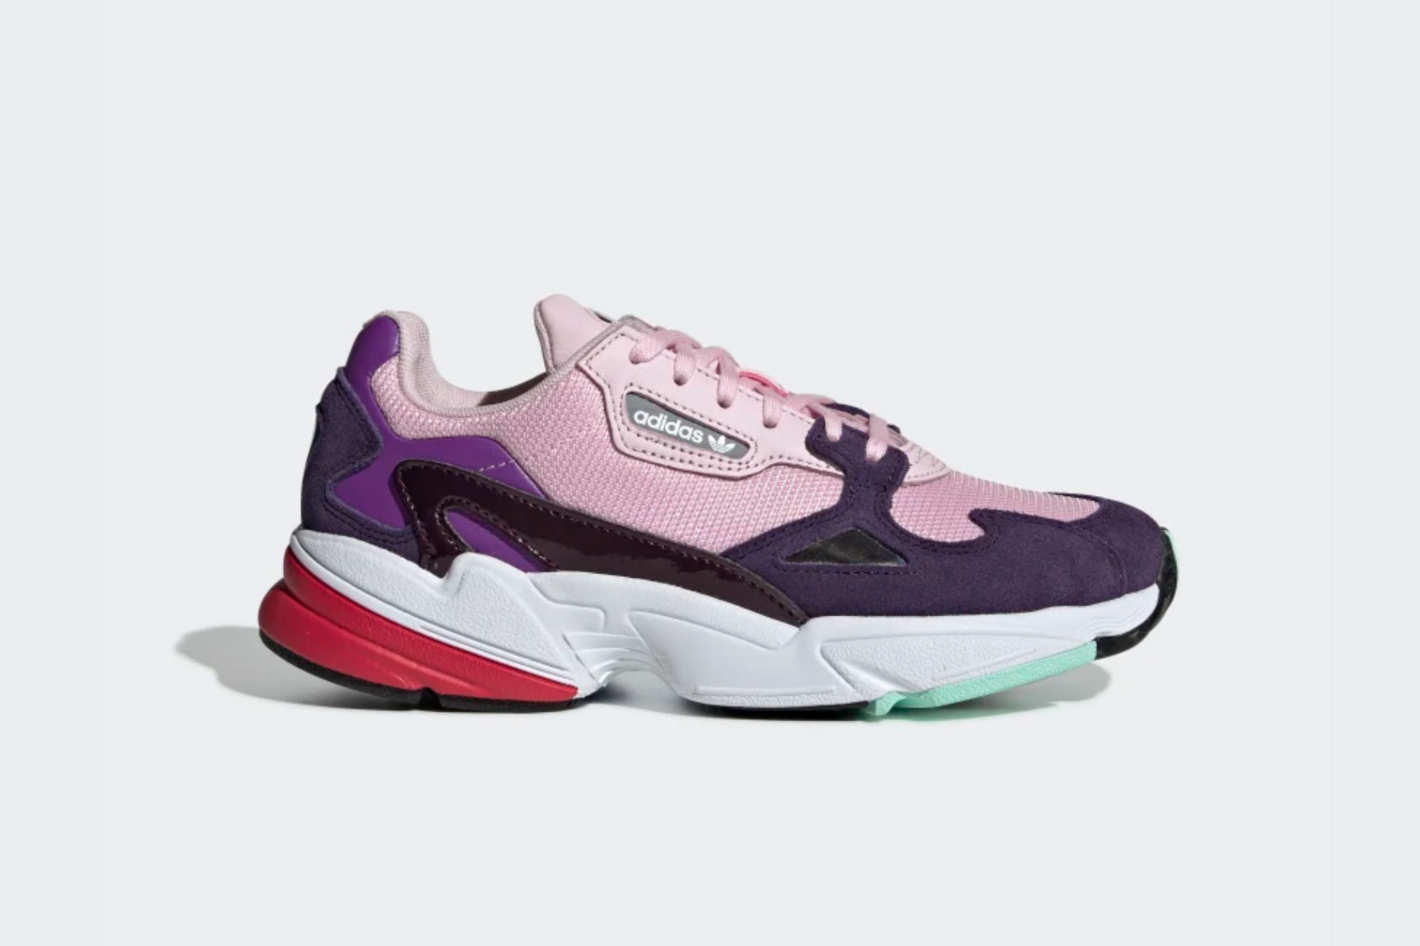 Adidas Women's Originals Falcon Shoes